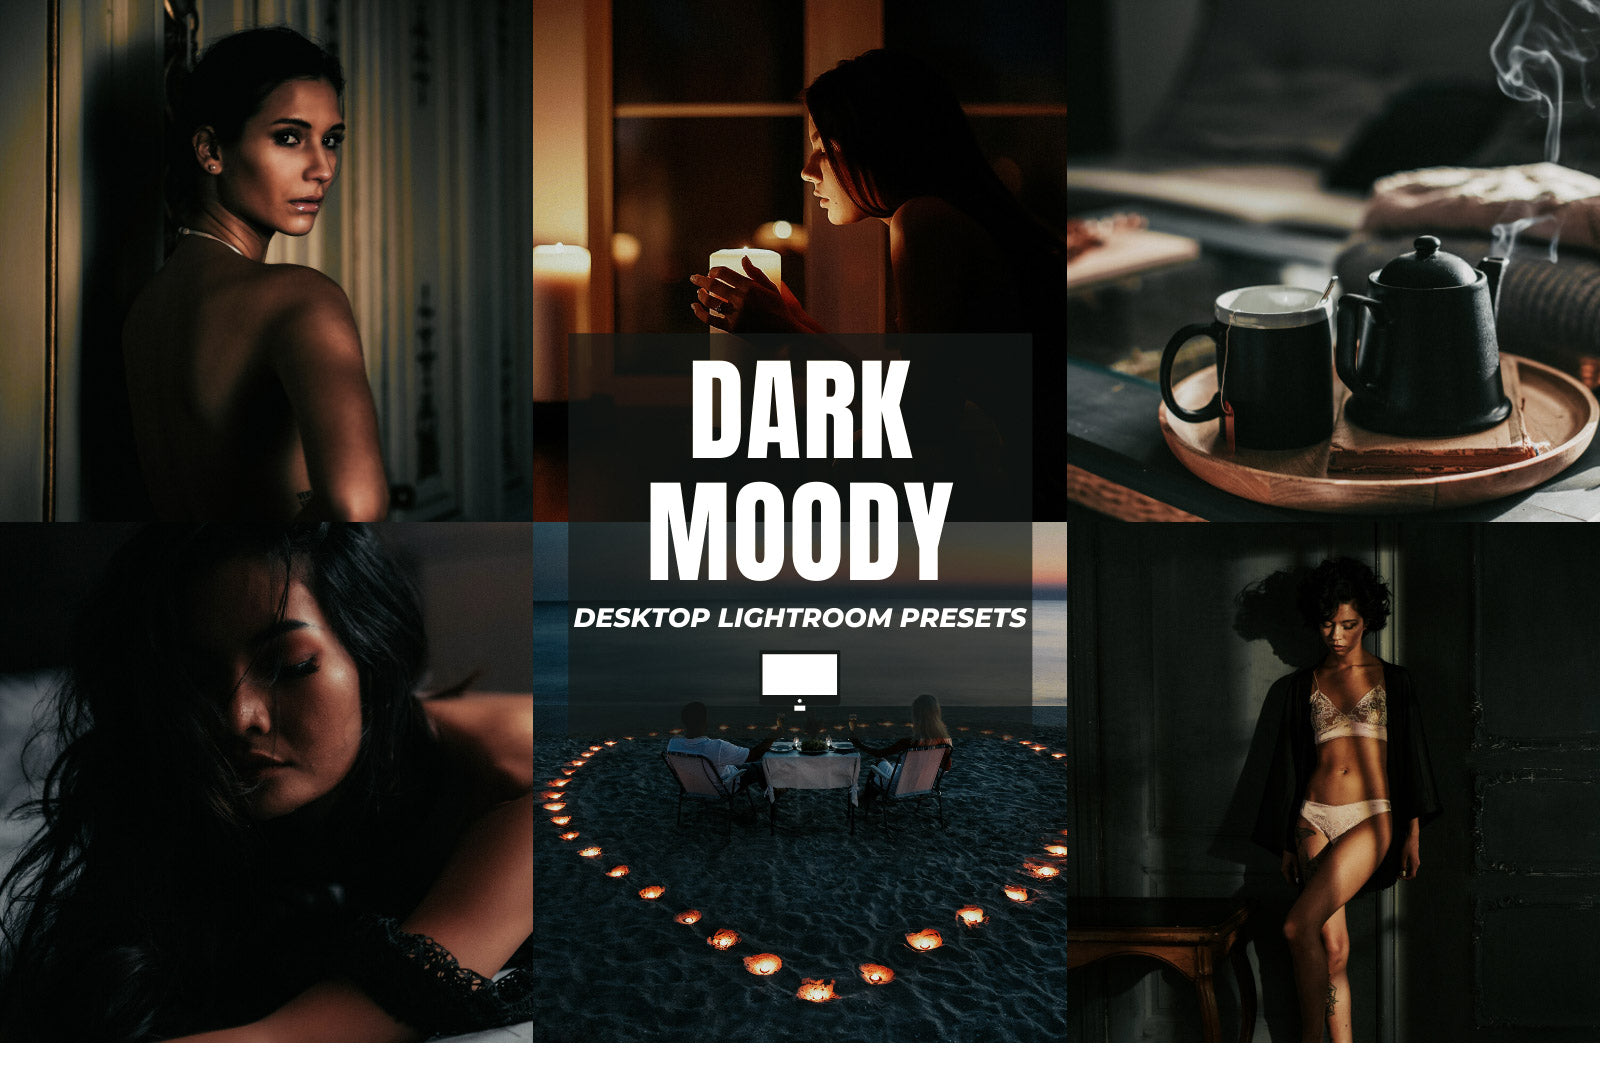 DARK MOODY DESKTOP LIGHTROOM PRESETS